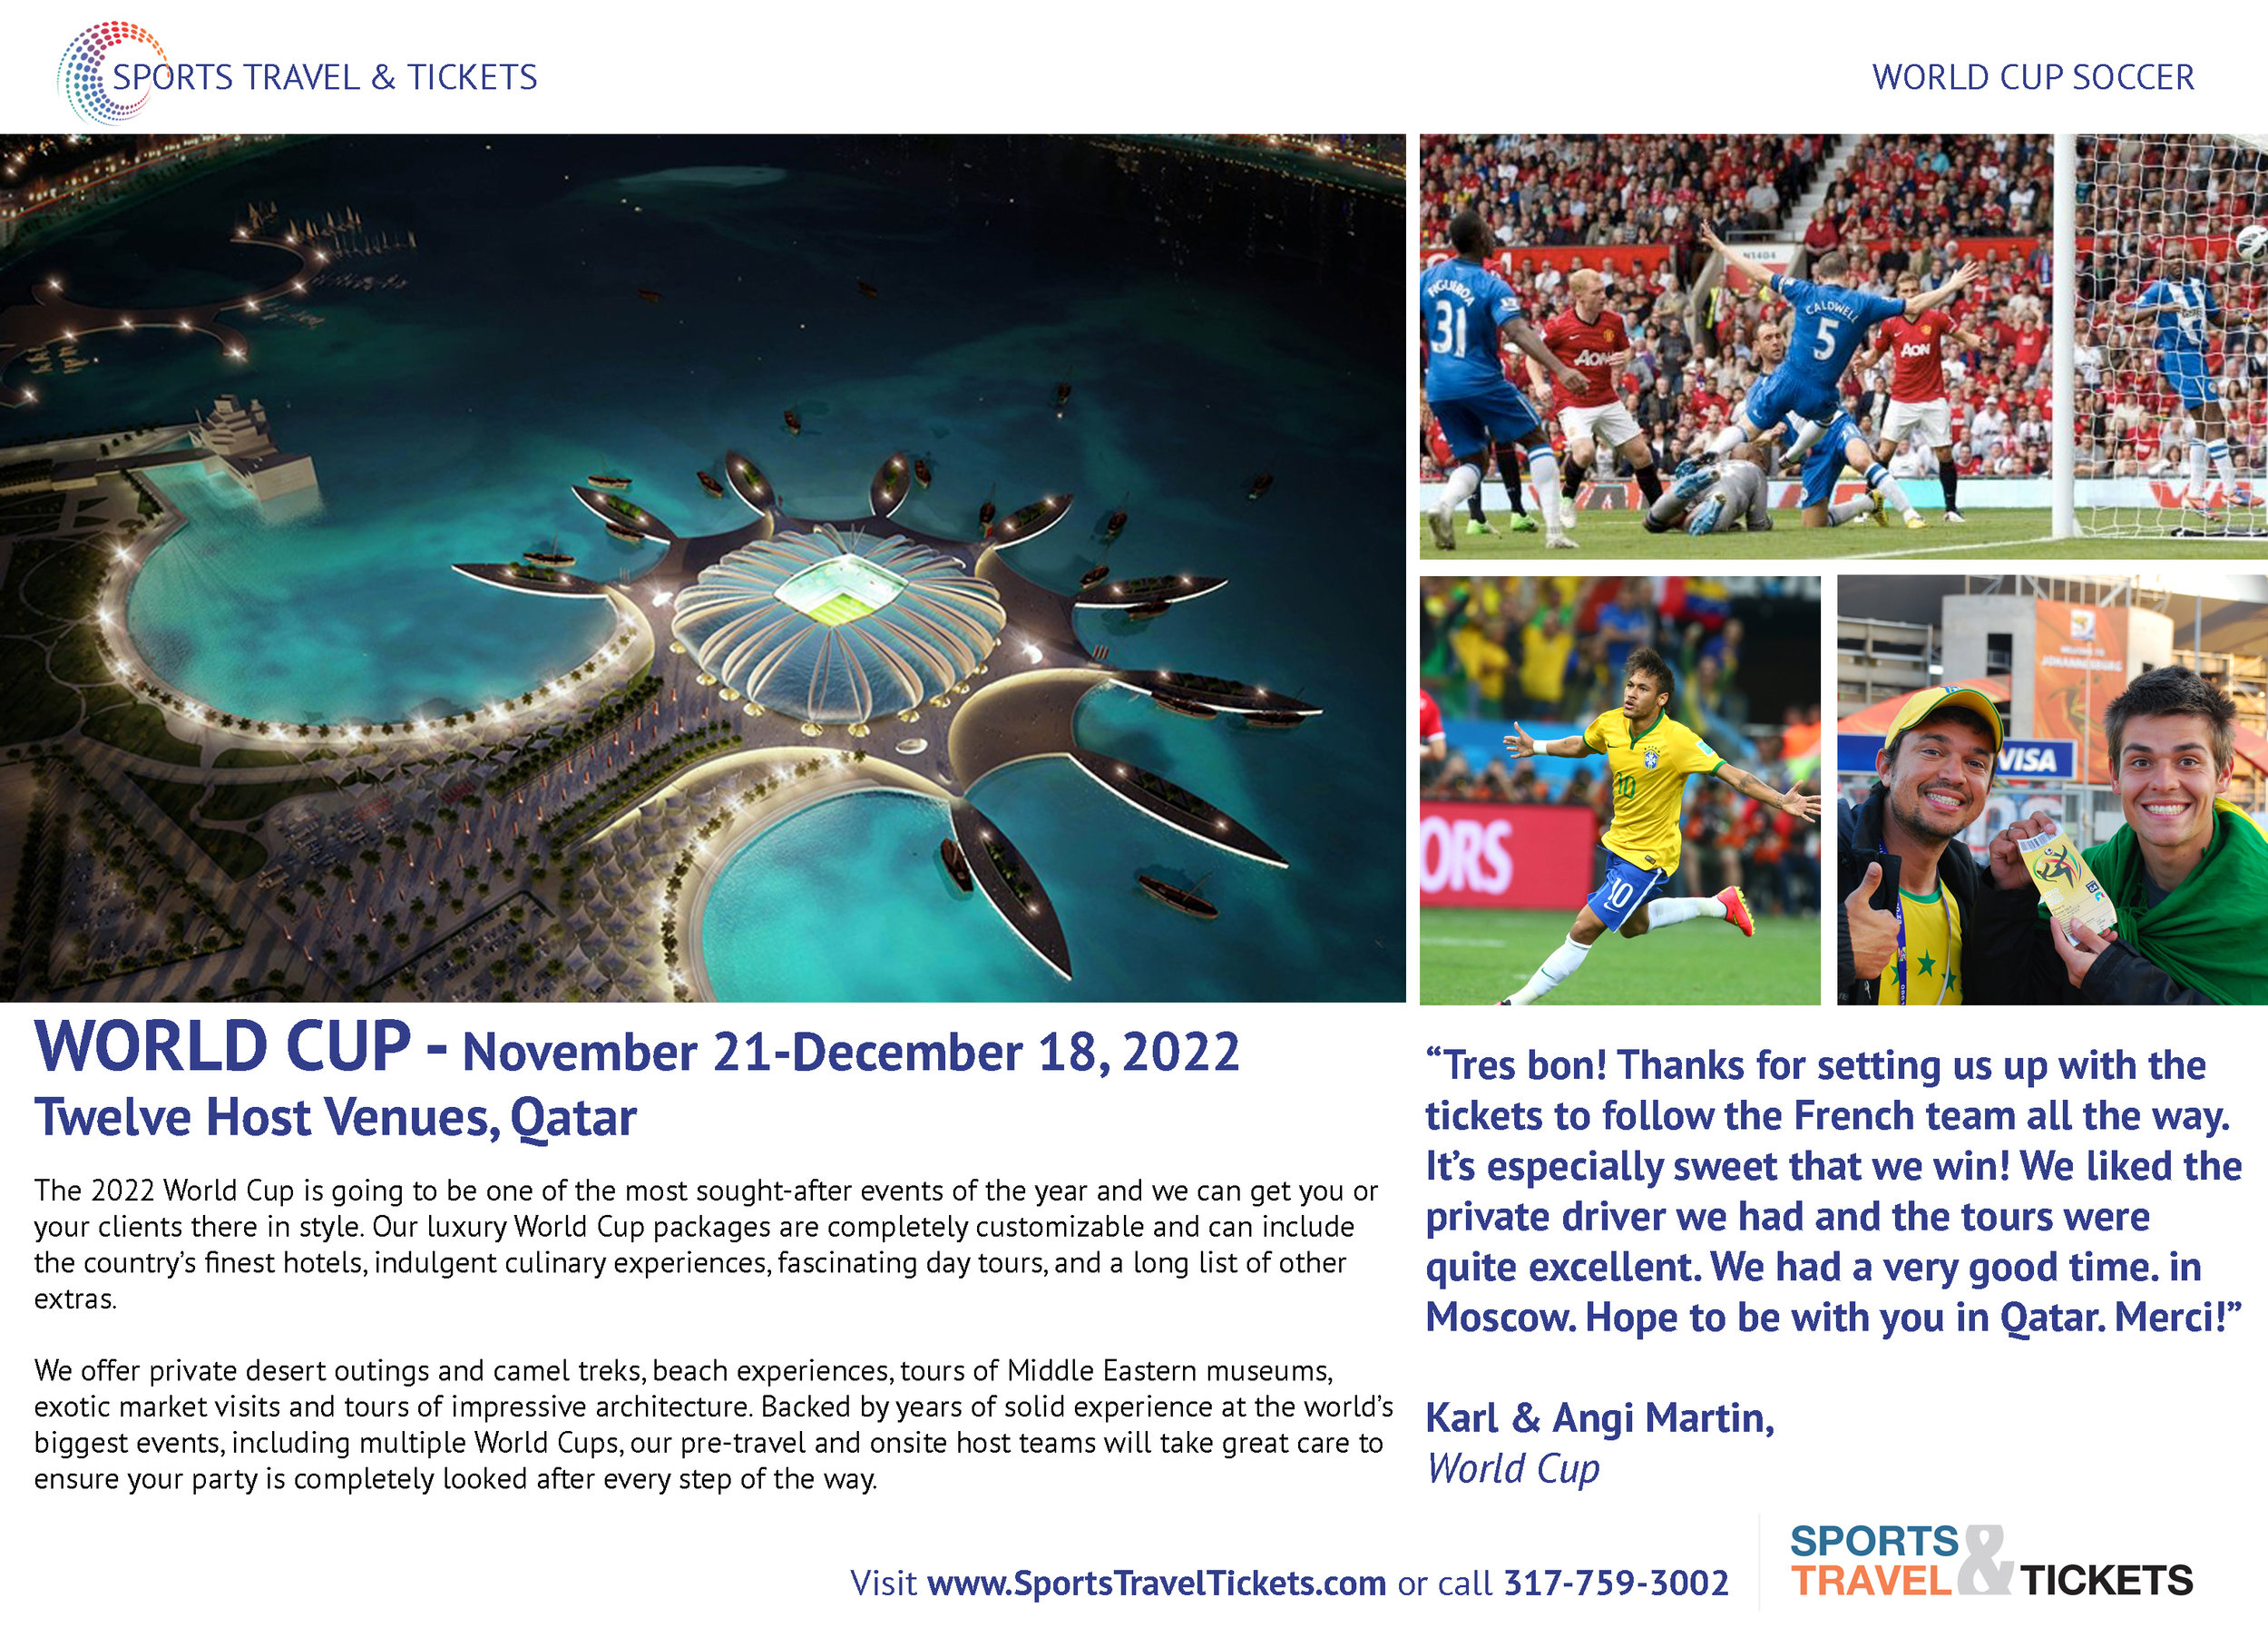 Sports Travel & Tickets Brochure World Cup Soccer football travel ticket packages.jpg